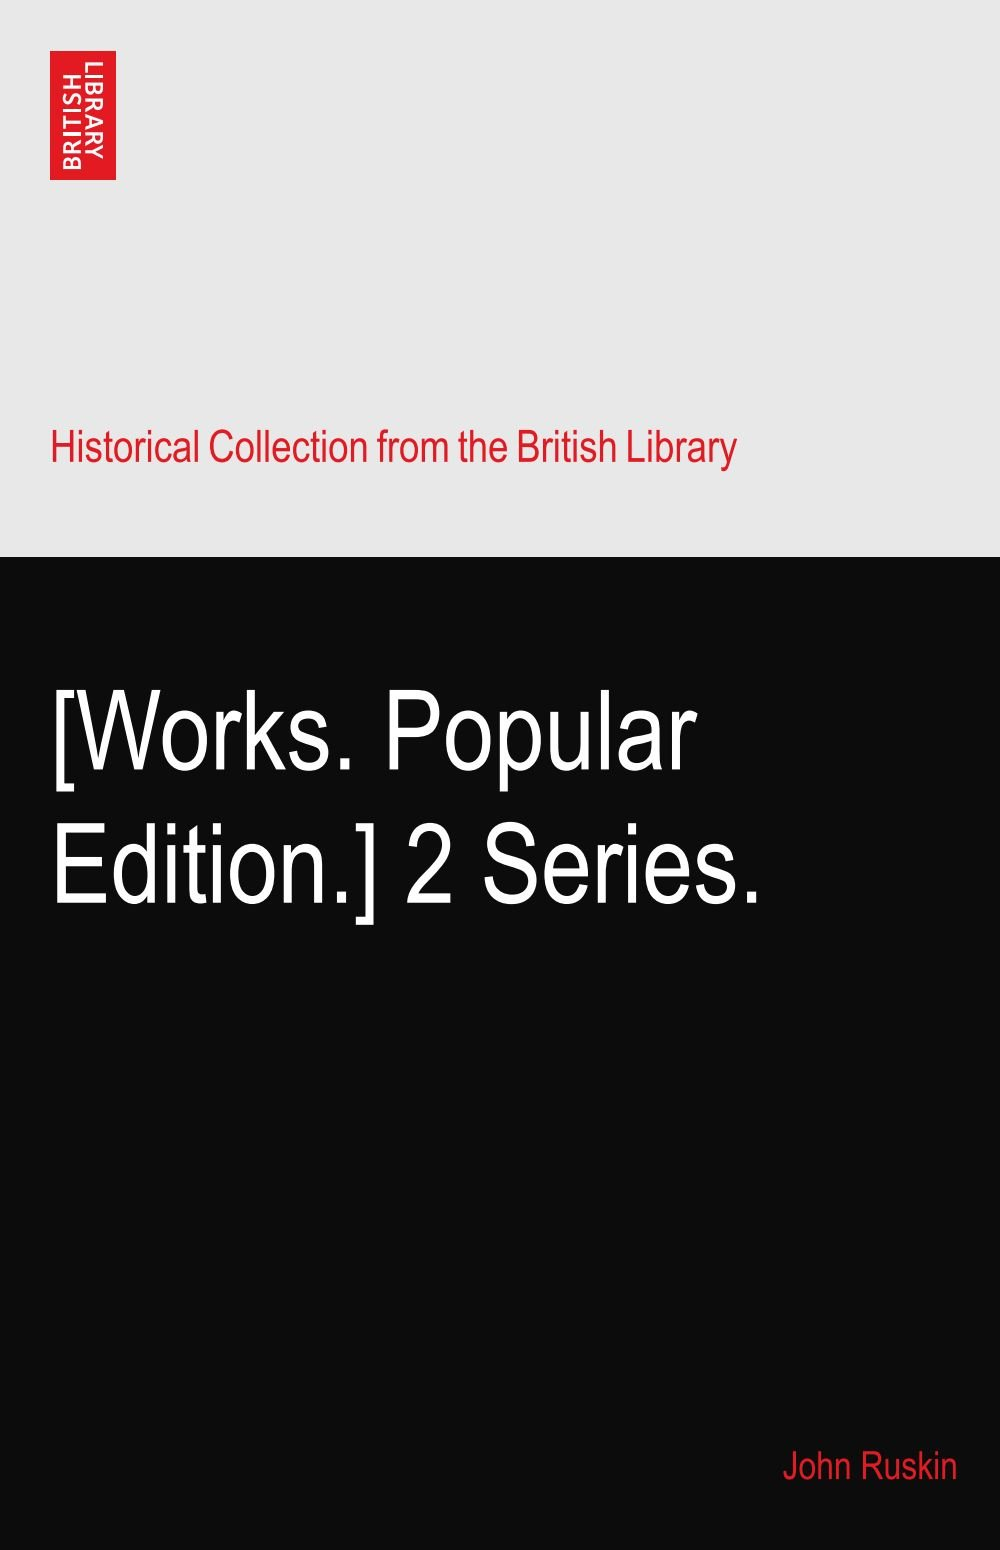 [Works. Popular Edition.] 2 Series. pdf